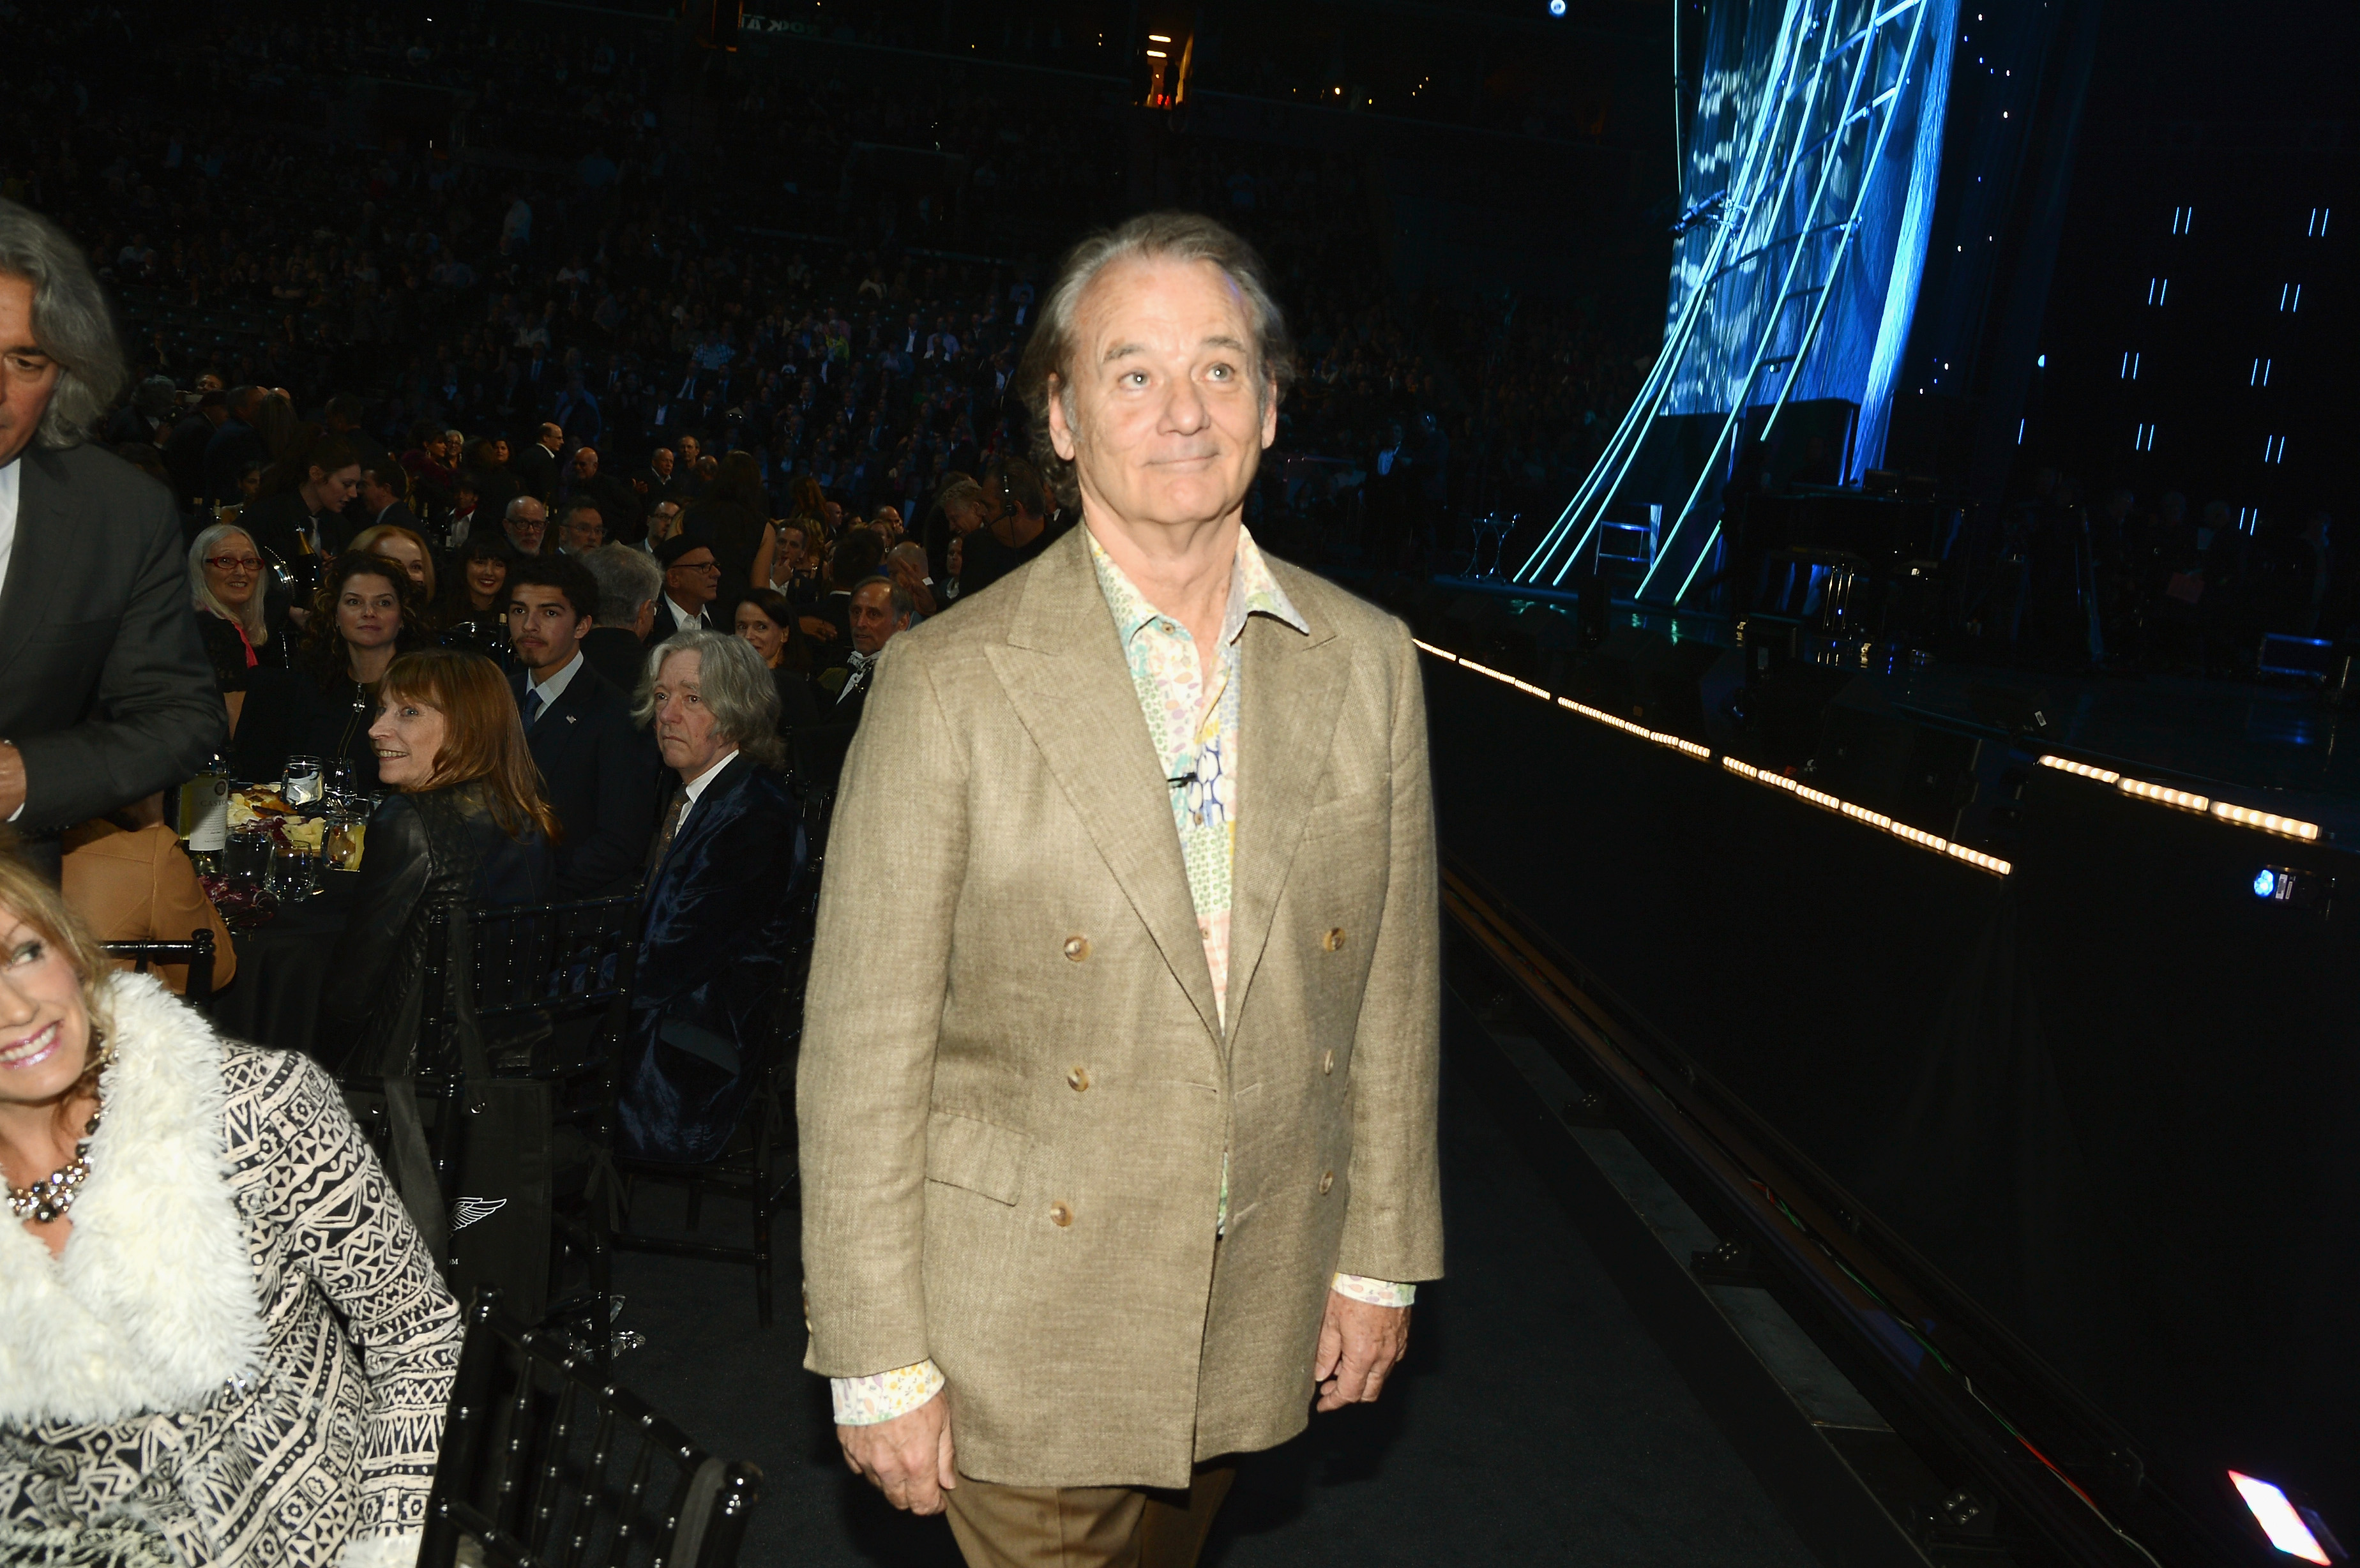 Actor Bill Murray attends the 29th Annual Rock And Roll Hall Of Fame Induction Ceremony at Barclays Center of Brooklyn on April 10, 2014 in New York City.